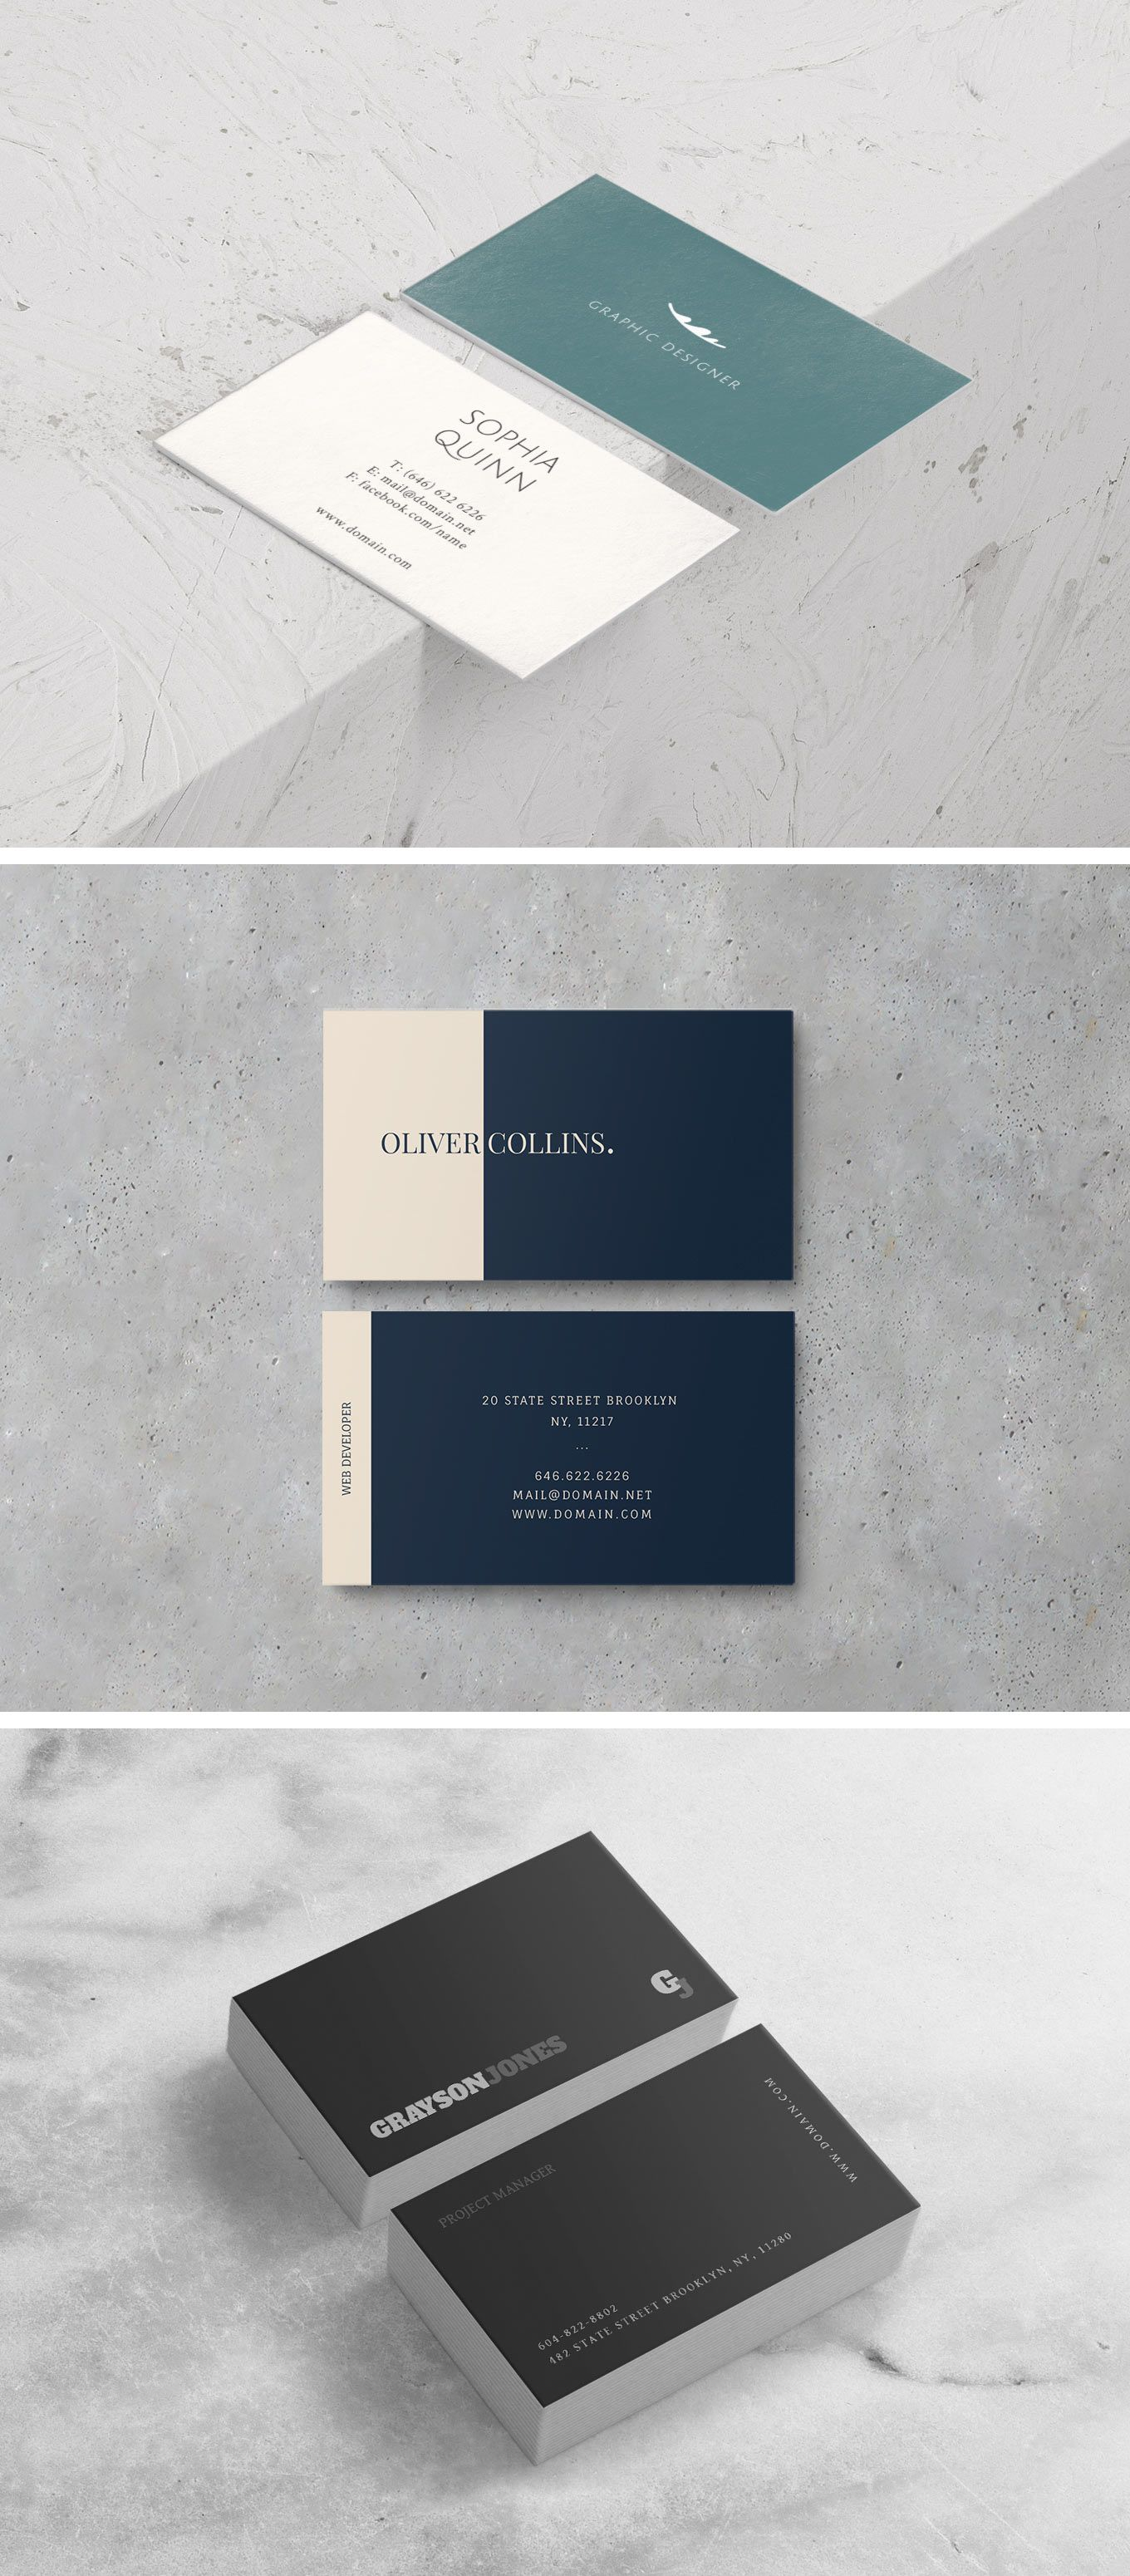 Hugo free business card templates in psd graphic design hugo business card templates download freebie by pixelbuddha freebies business businesscards friedricerecipe Images